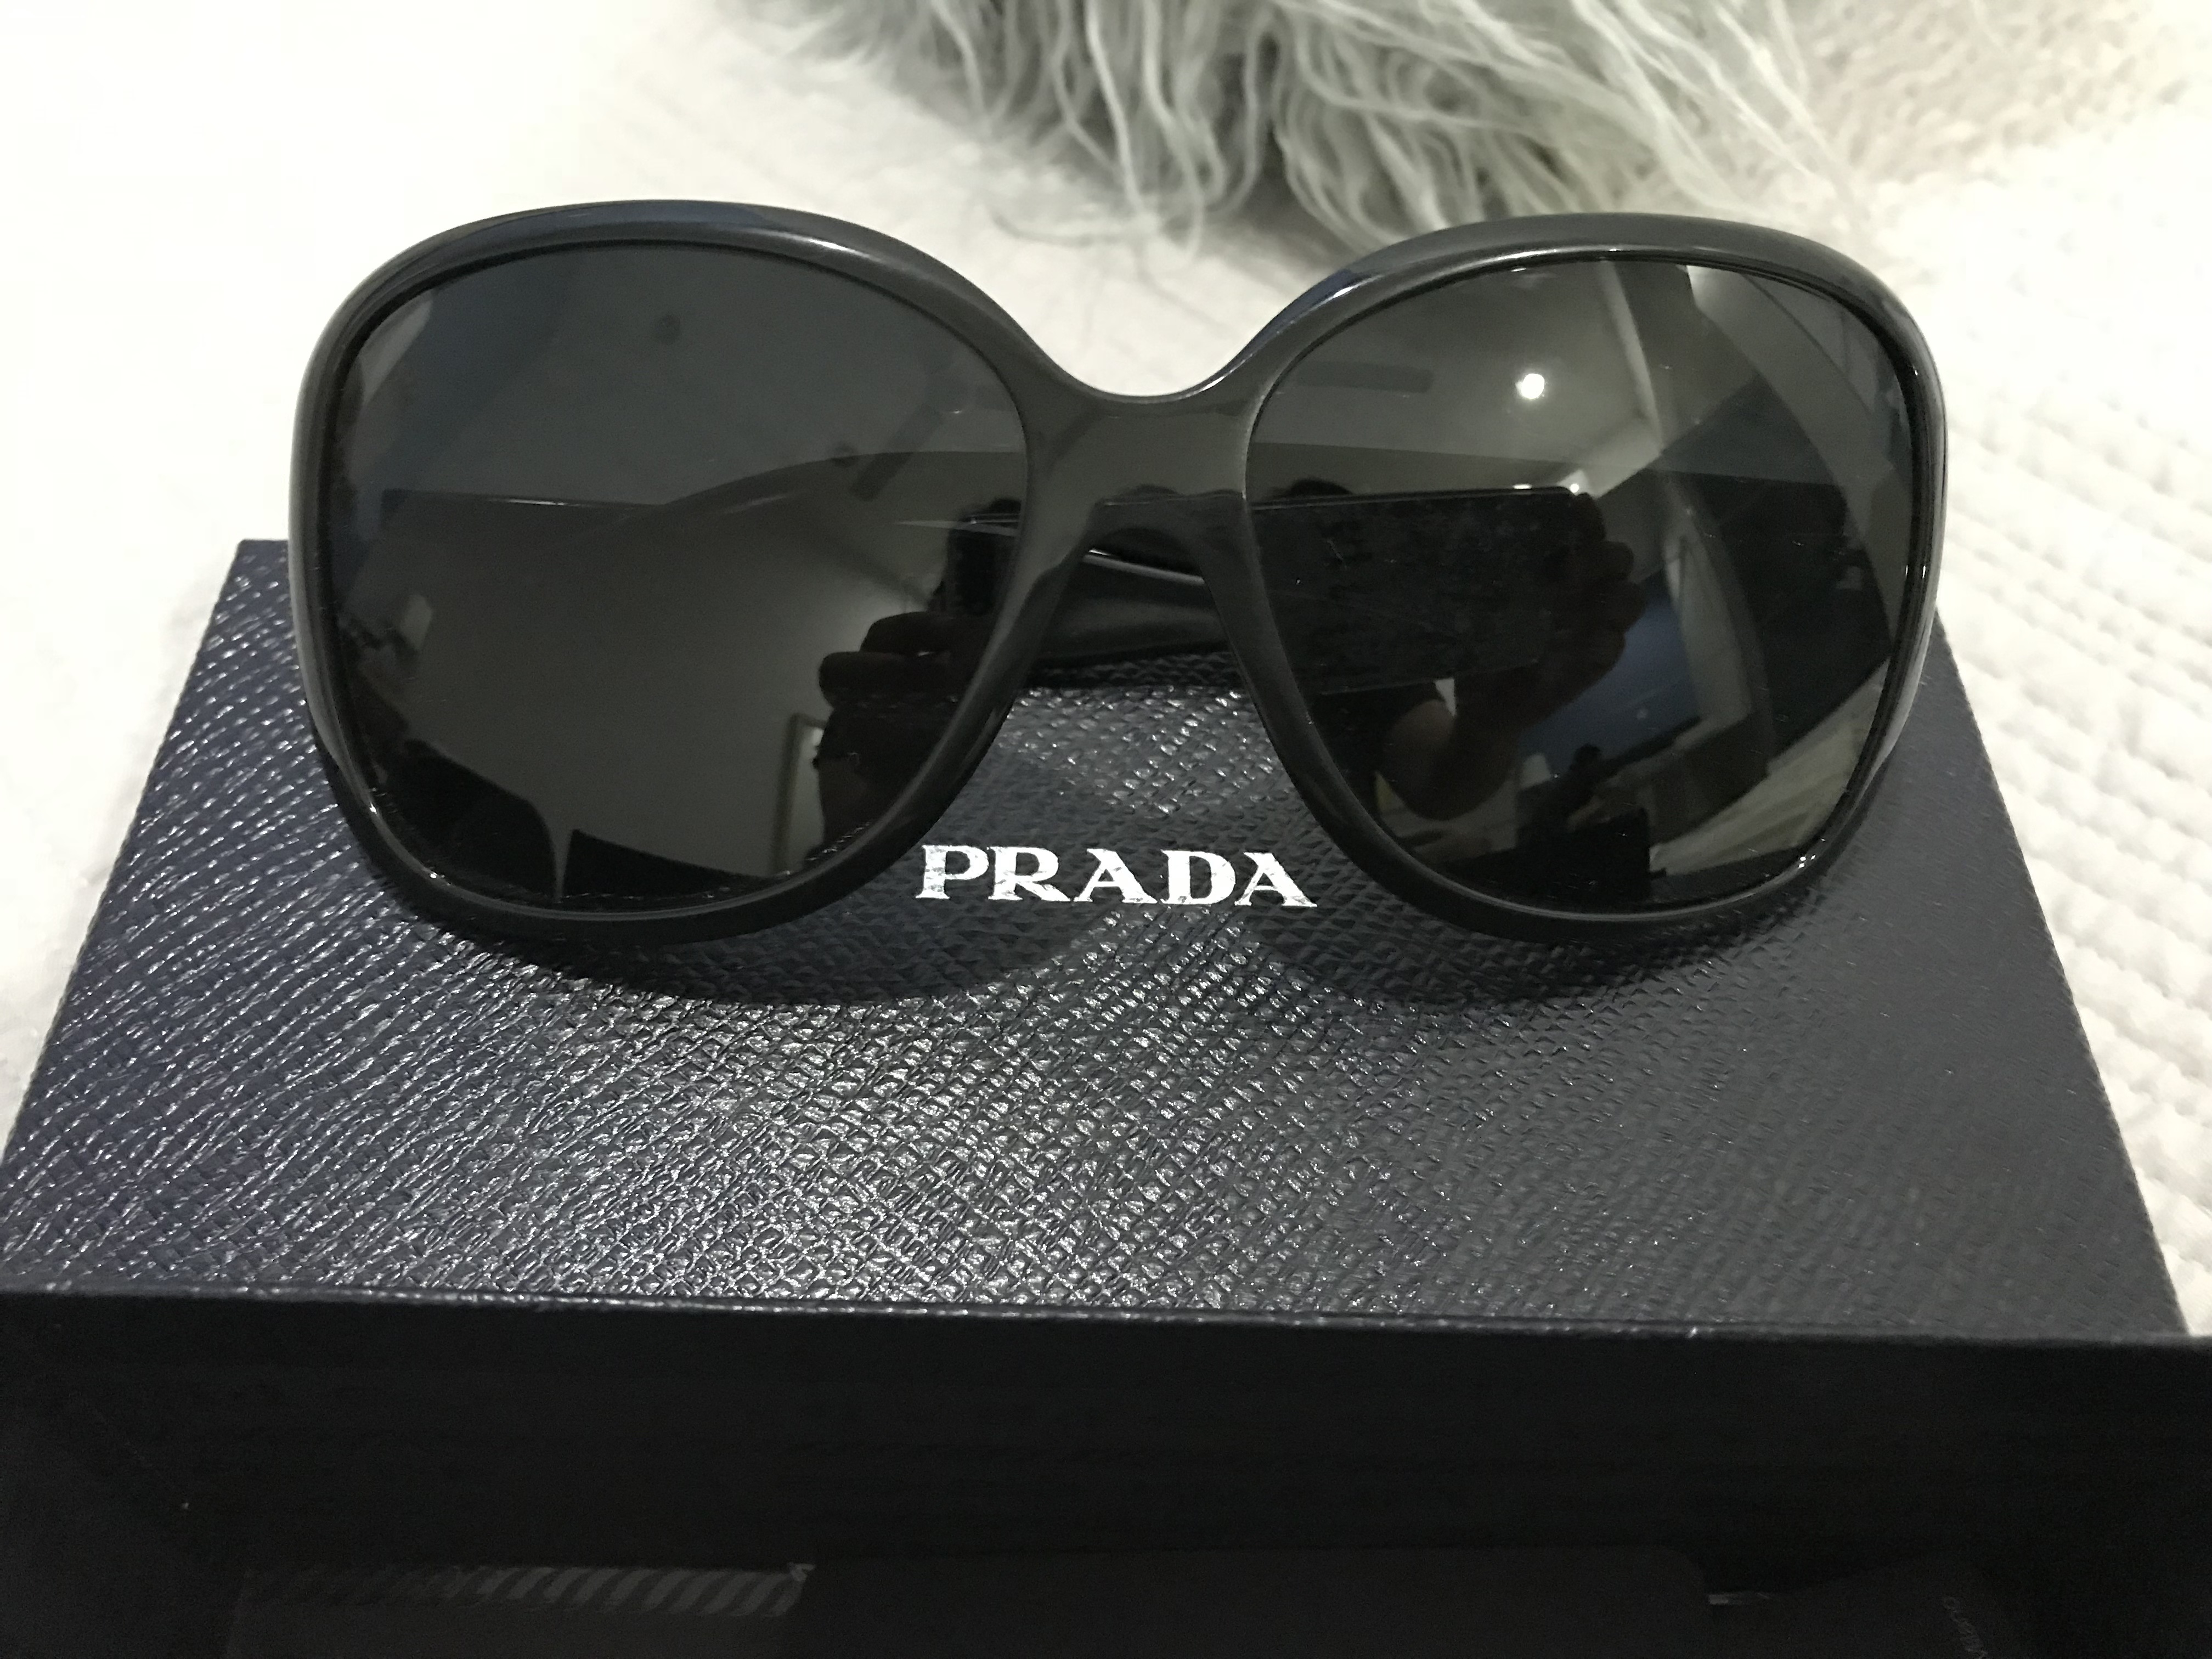 ae7c5a7cc6d30 ... spain prada sunglasses completed original packaging condition 9.5 10  selling price sgd230 rm680 only contact via